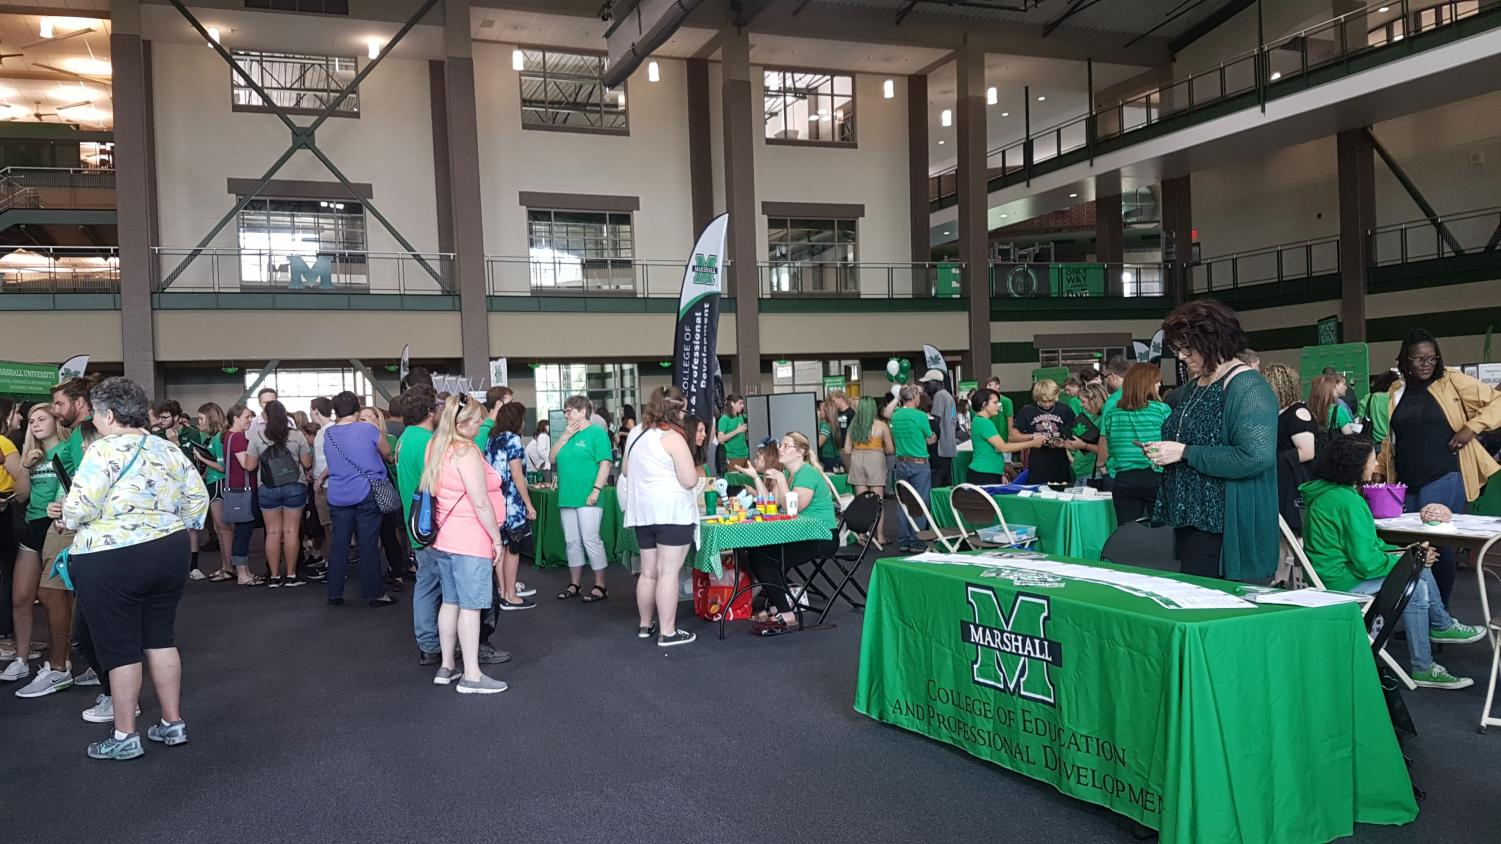 High school students and family members visited Marshall University during Green and White Day Saturday, Sept. 28.